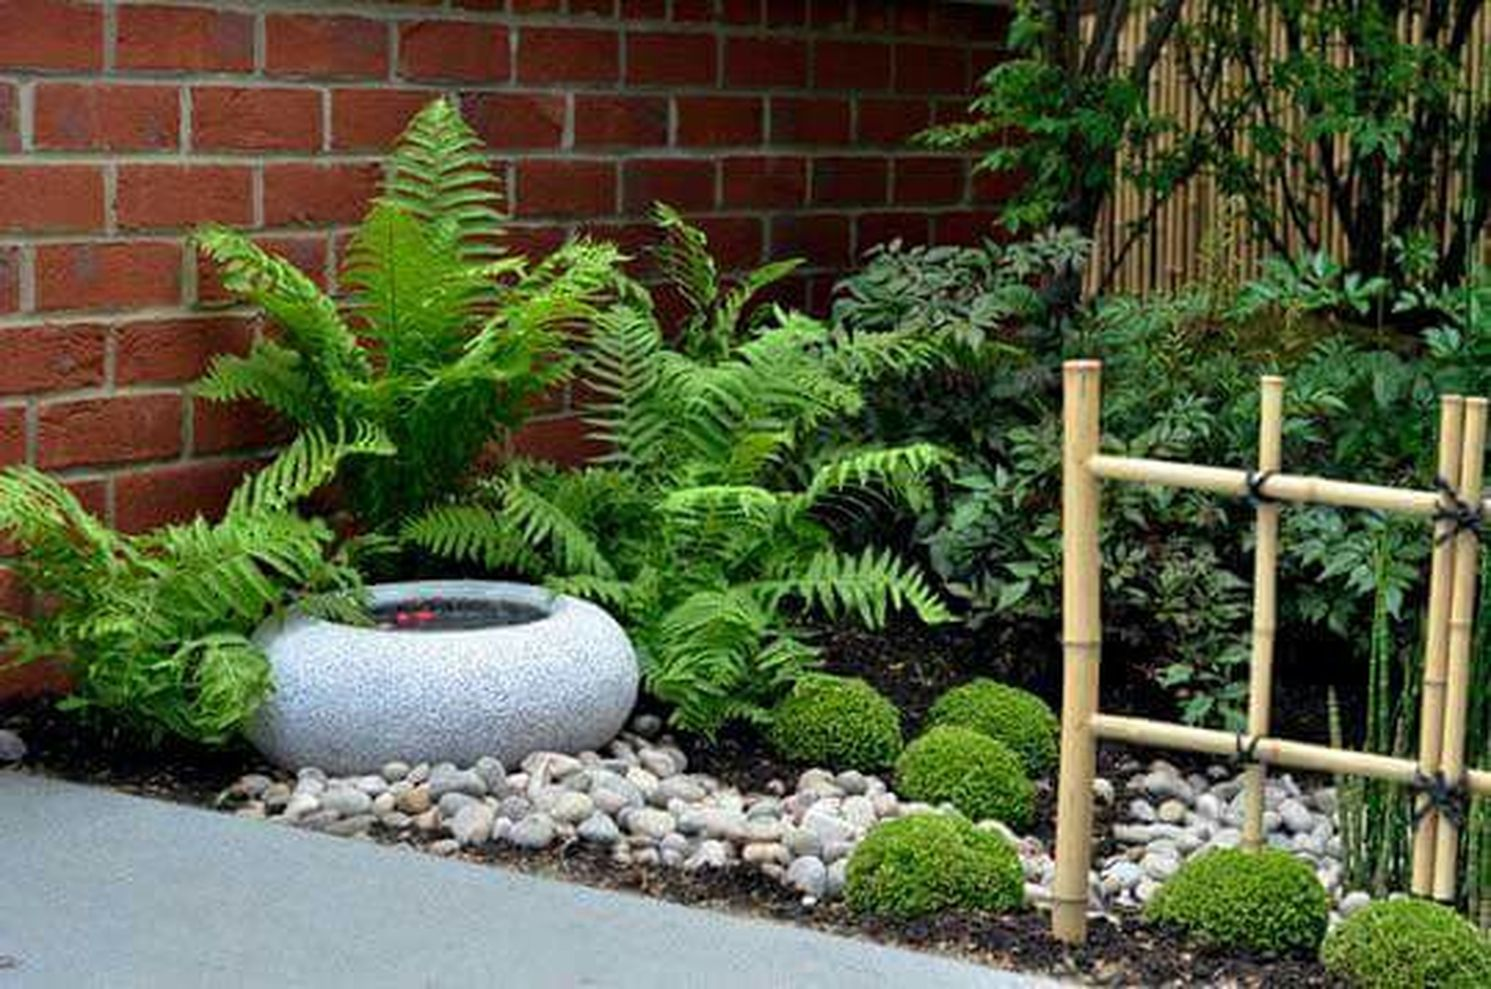 Inspiring small japanese garden design ideas 01 round decor for Small round garden design